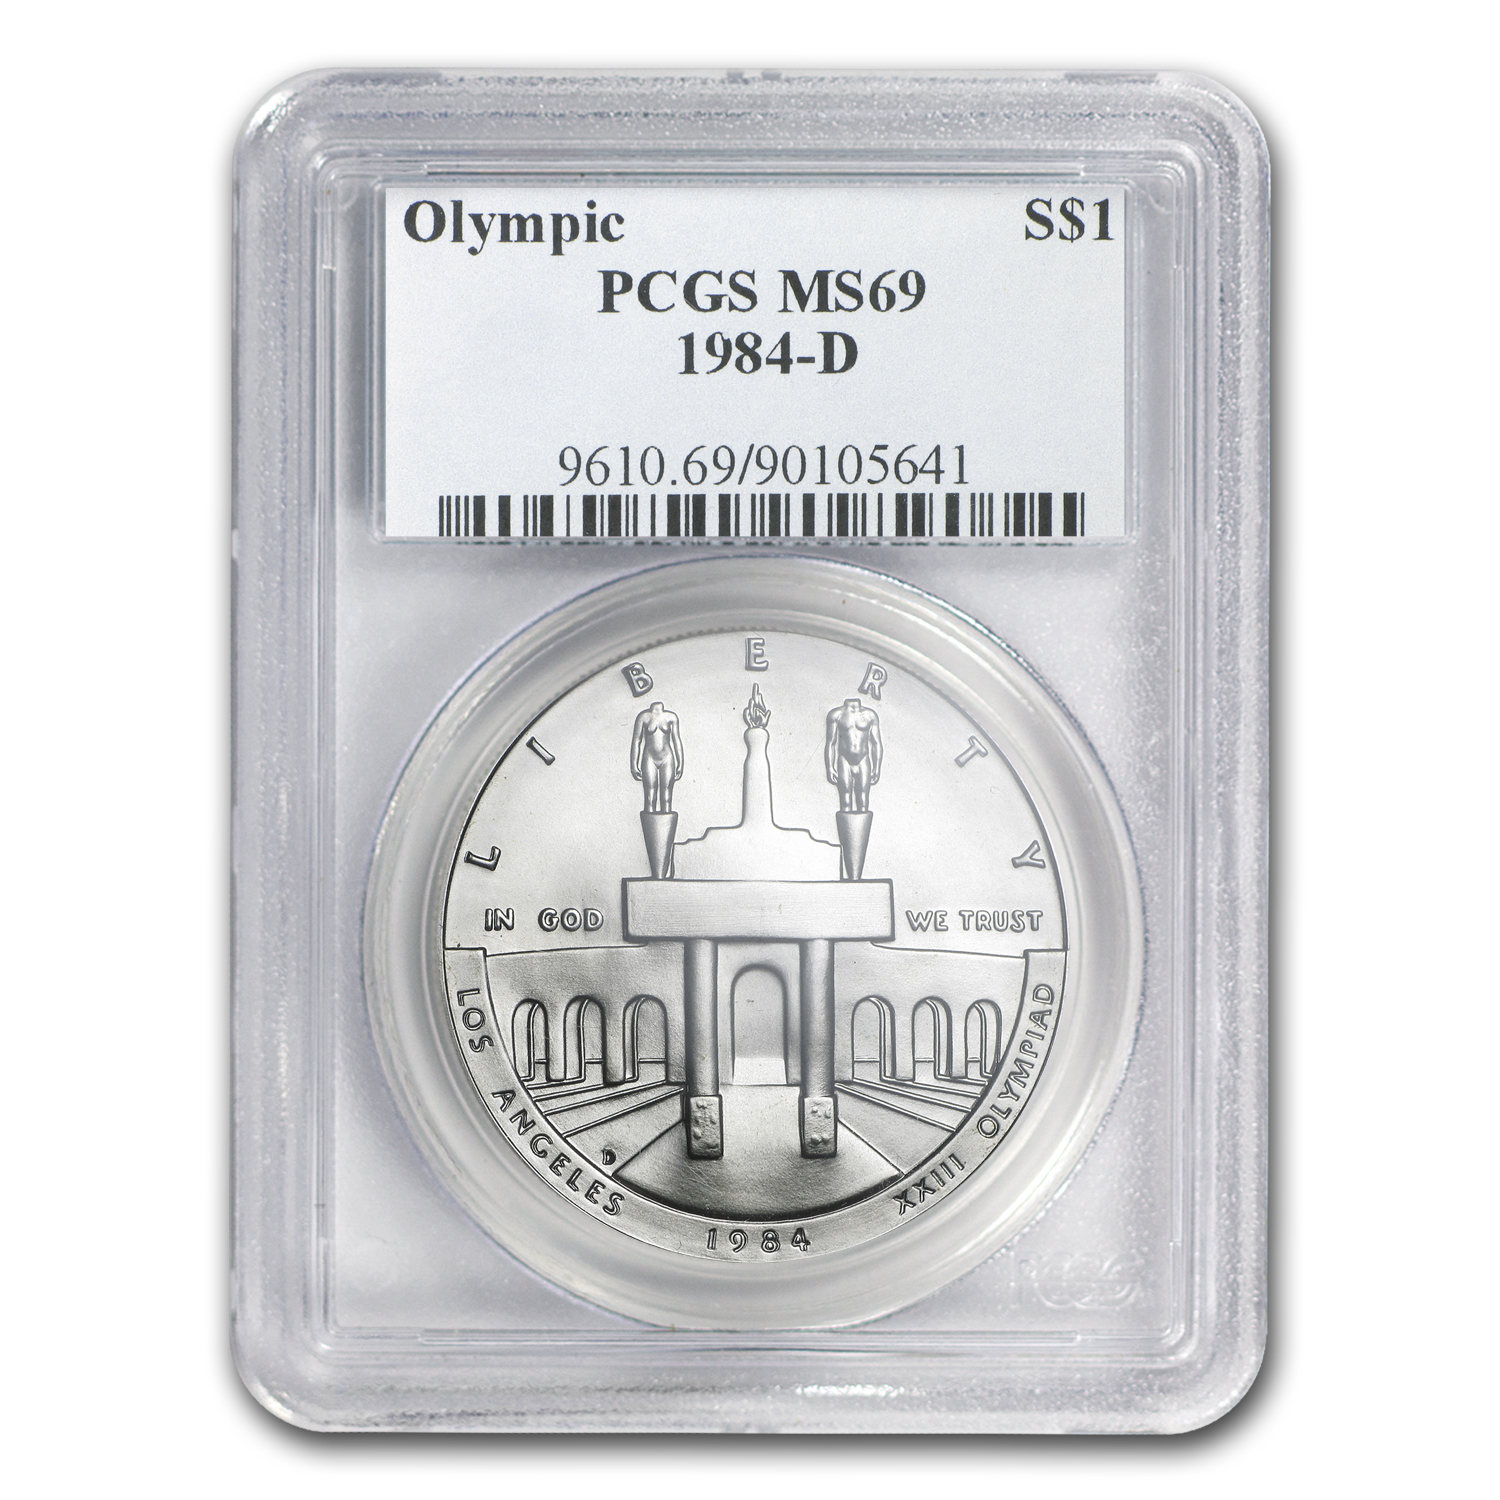 1984-D Olympic $1 Silver Commemorative MS-69 PCGS